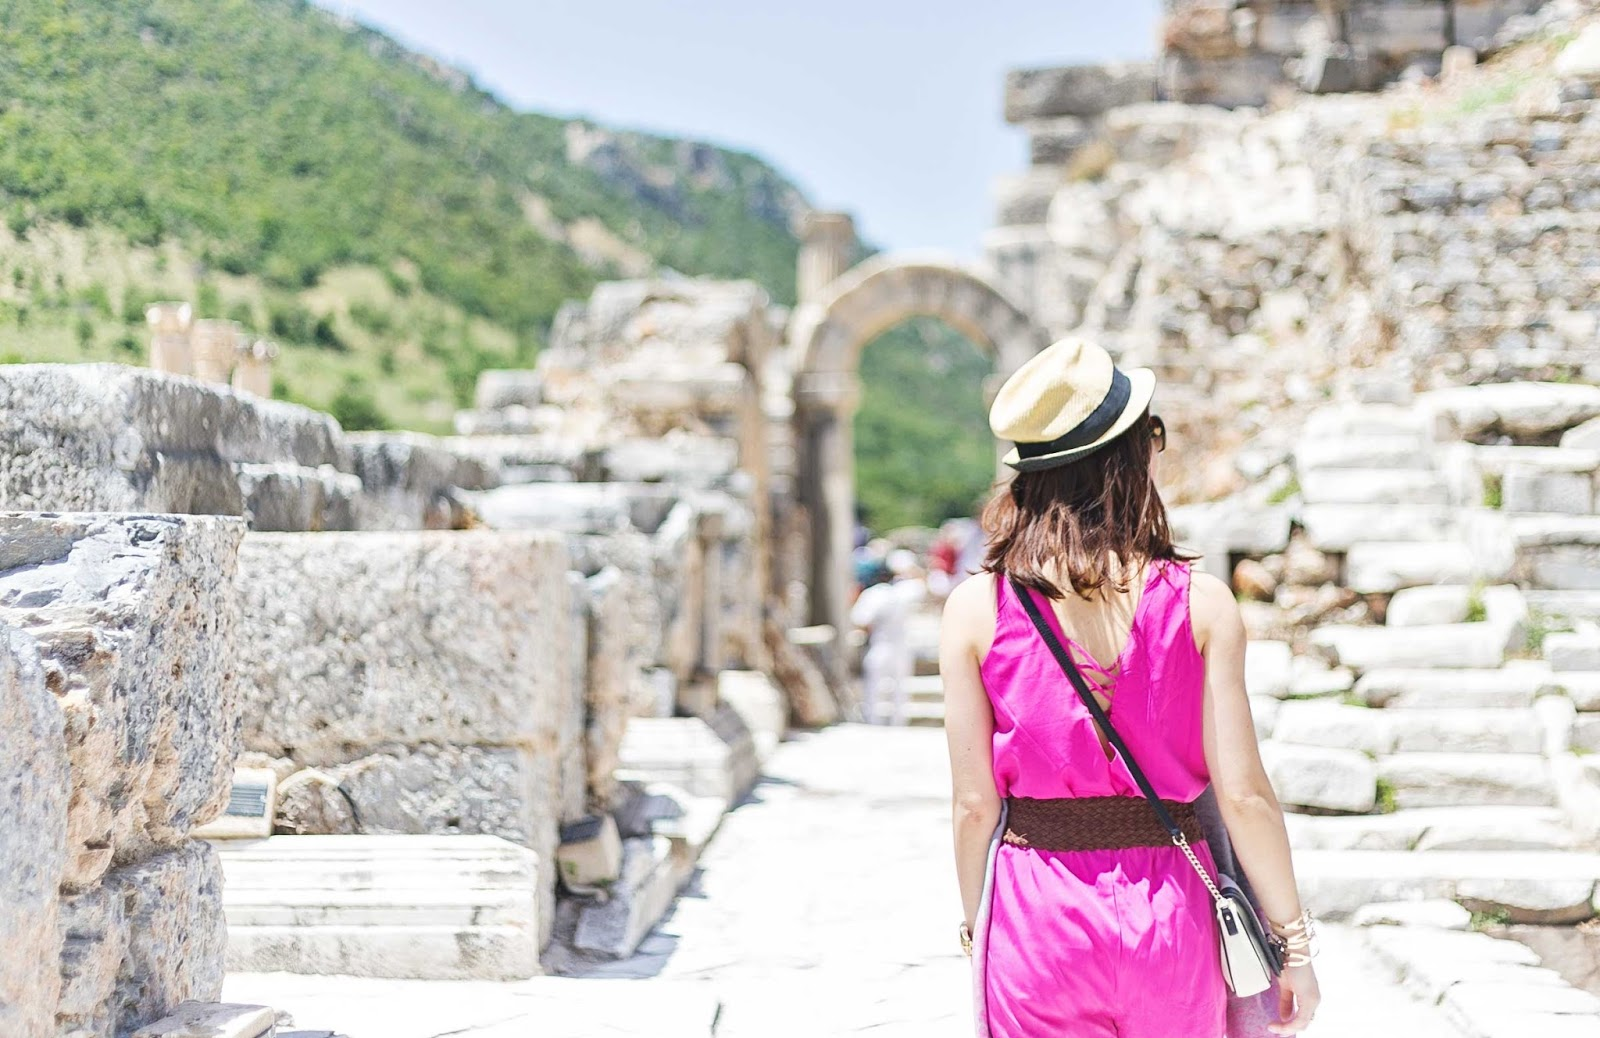 Ephesus, Turkey - Celebrity Cruise Vacation